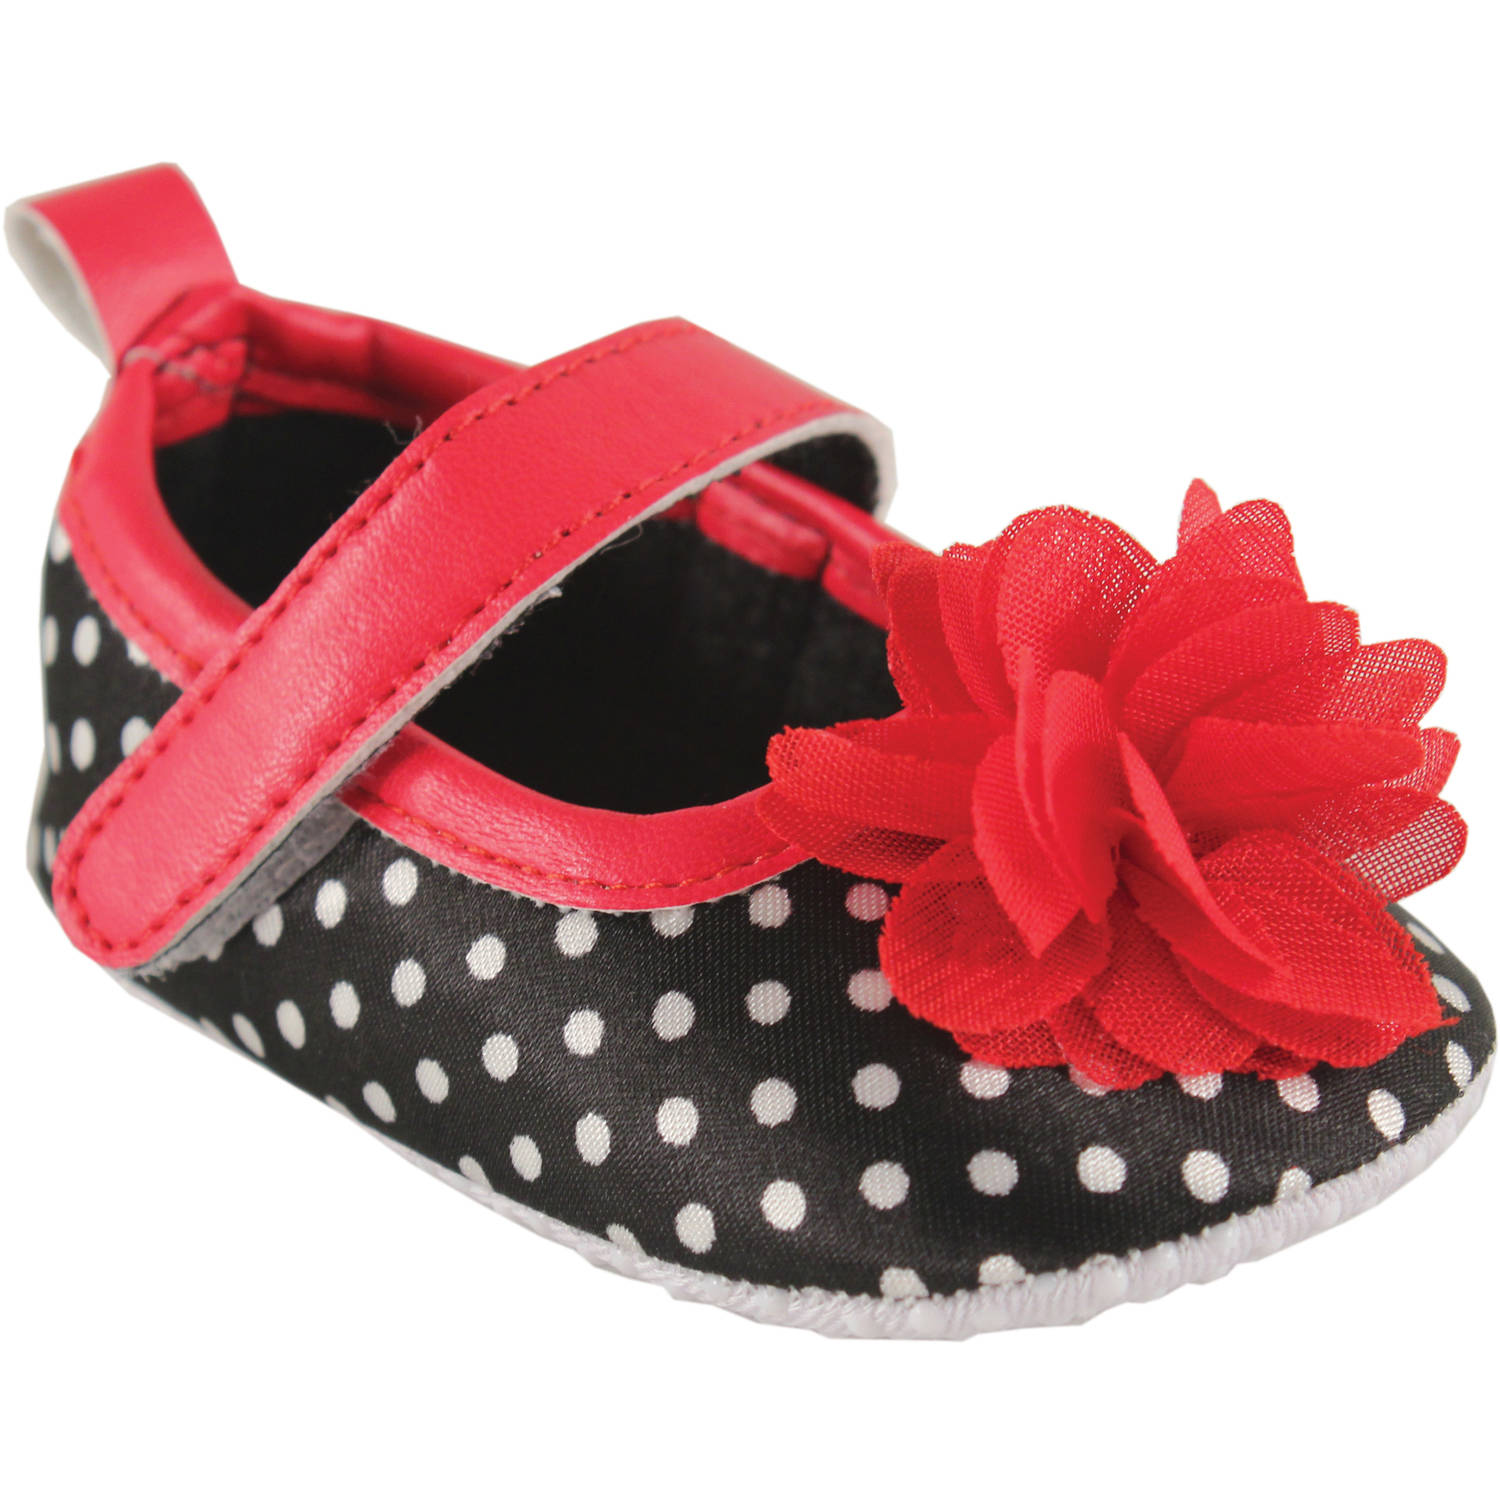 Luvable Friends Newborn Baby Girl Novelty Print Mary Jane Shoes